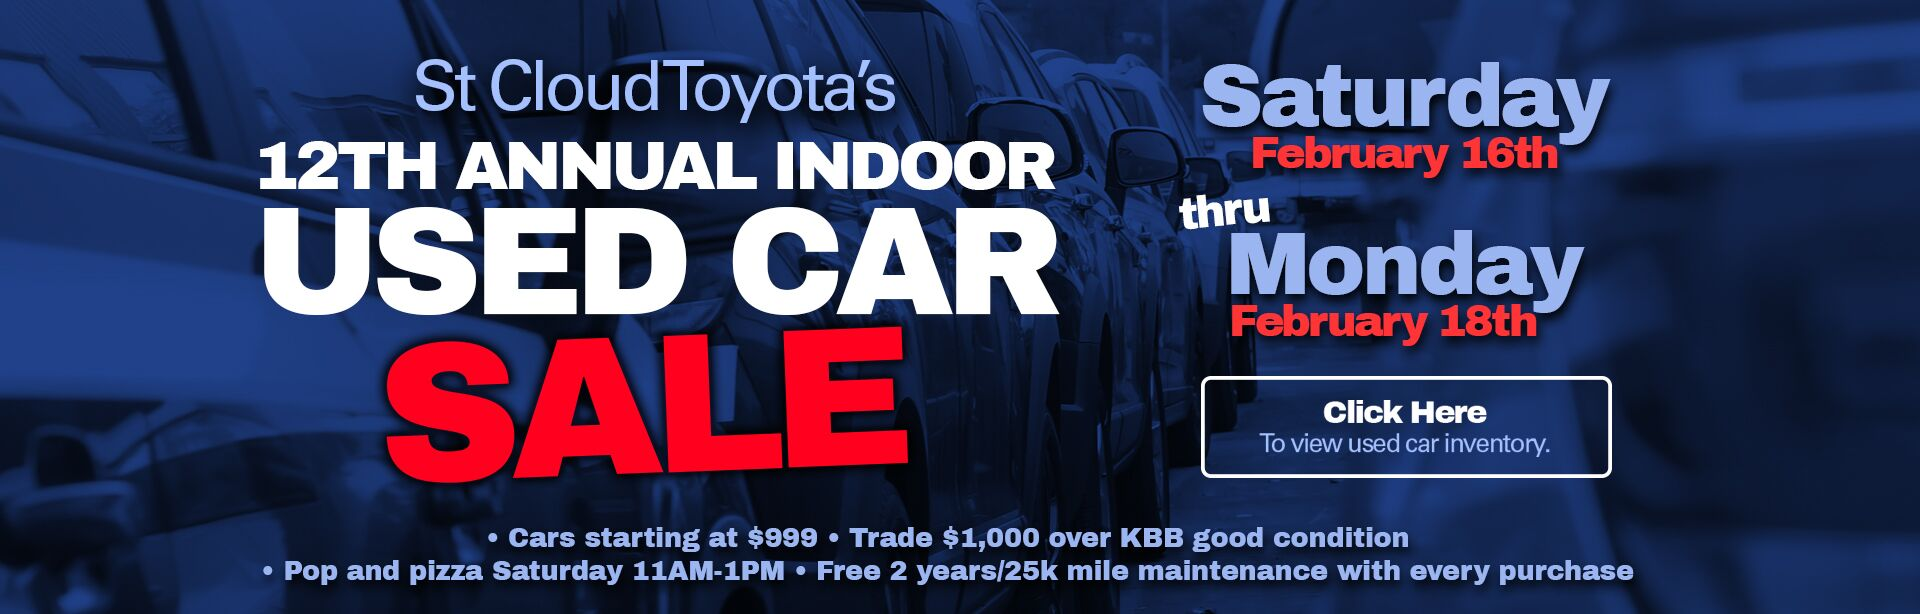 Indoor used Car Sale